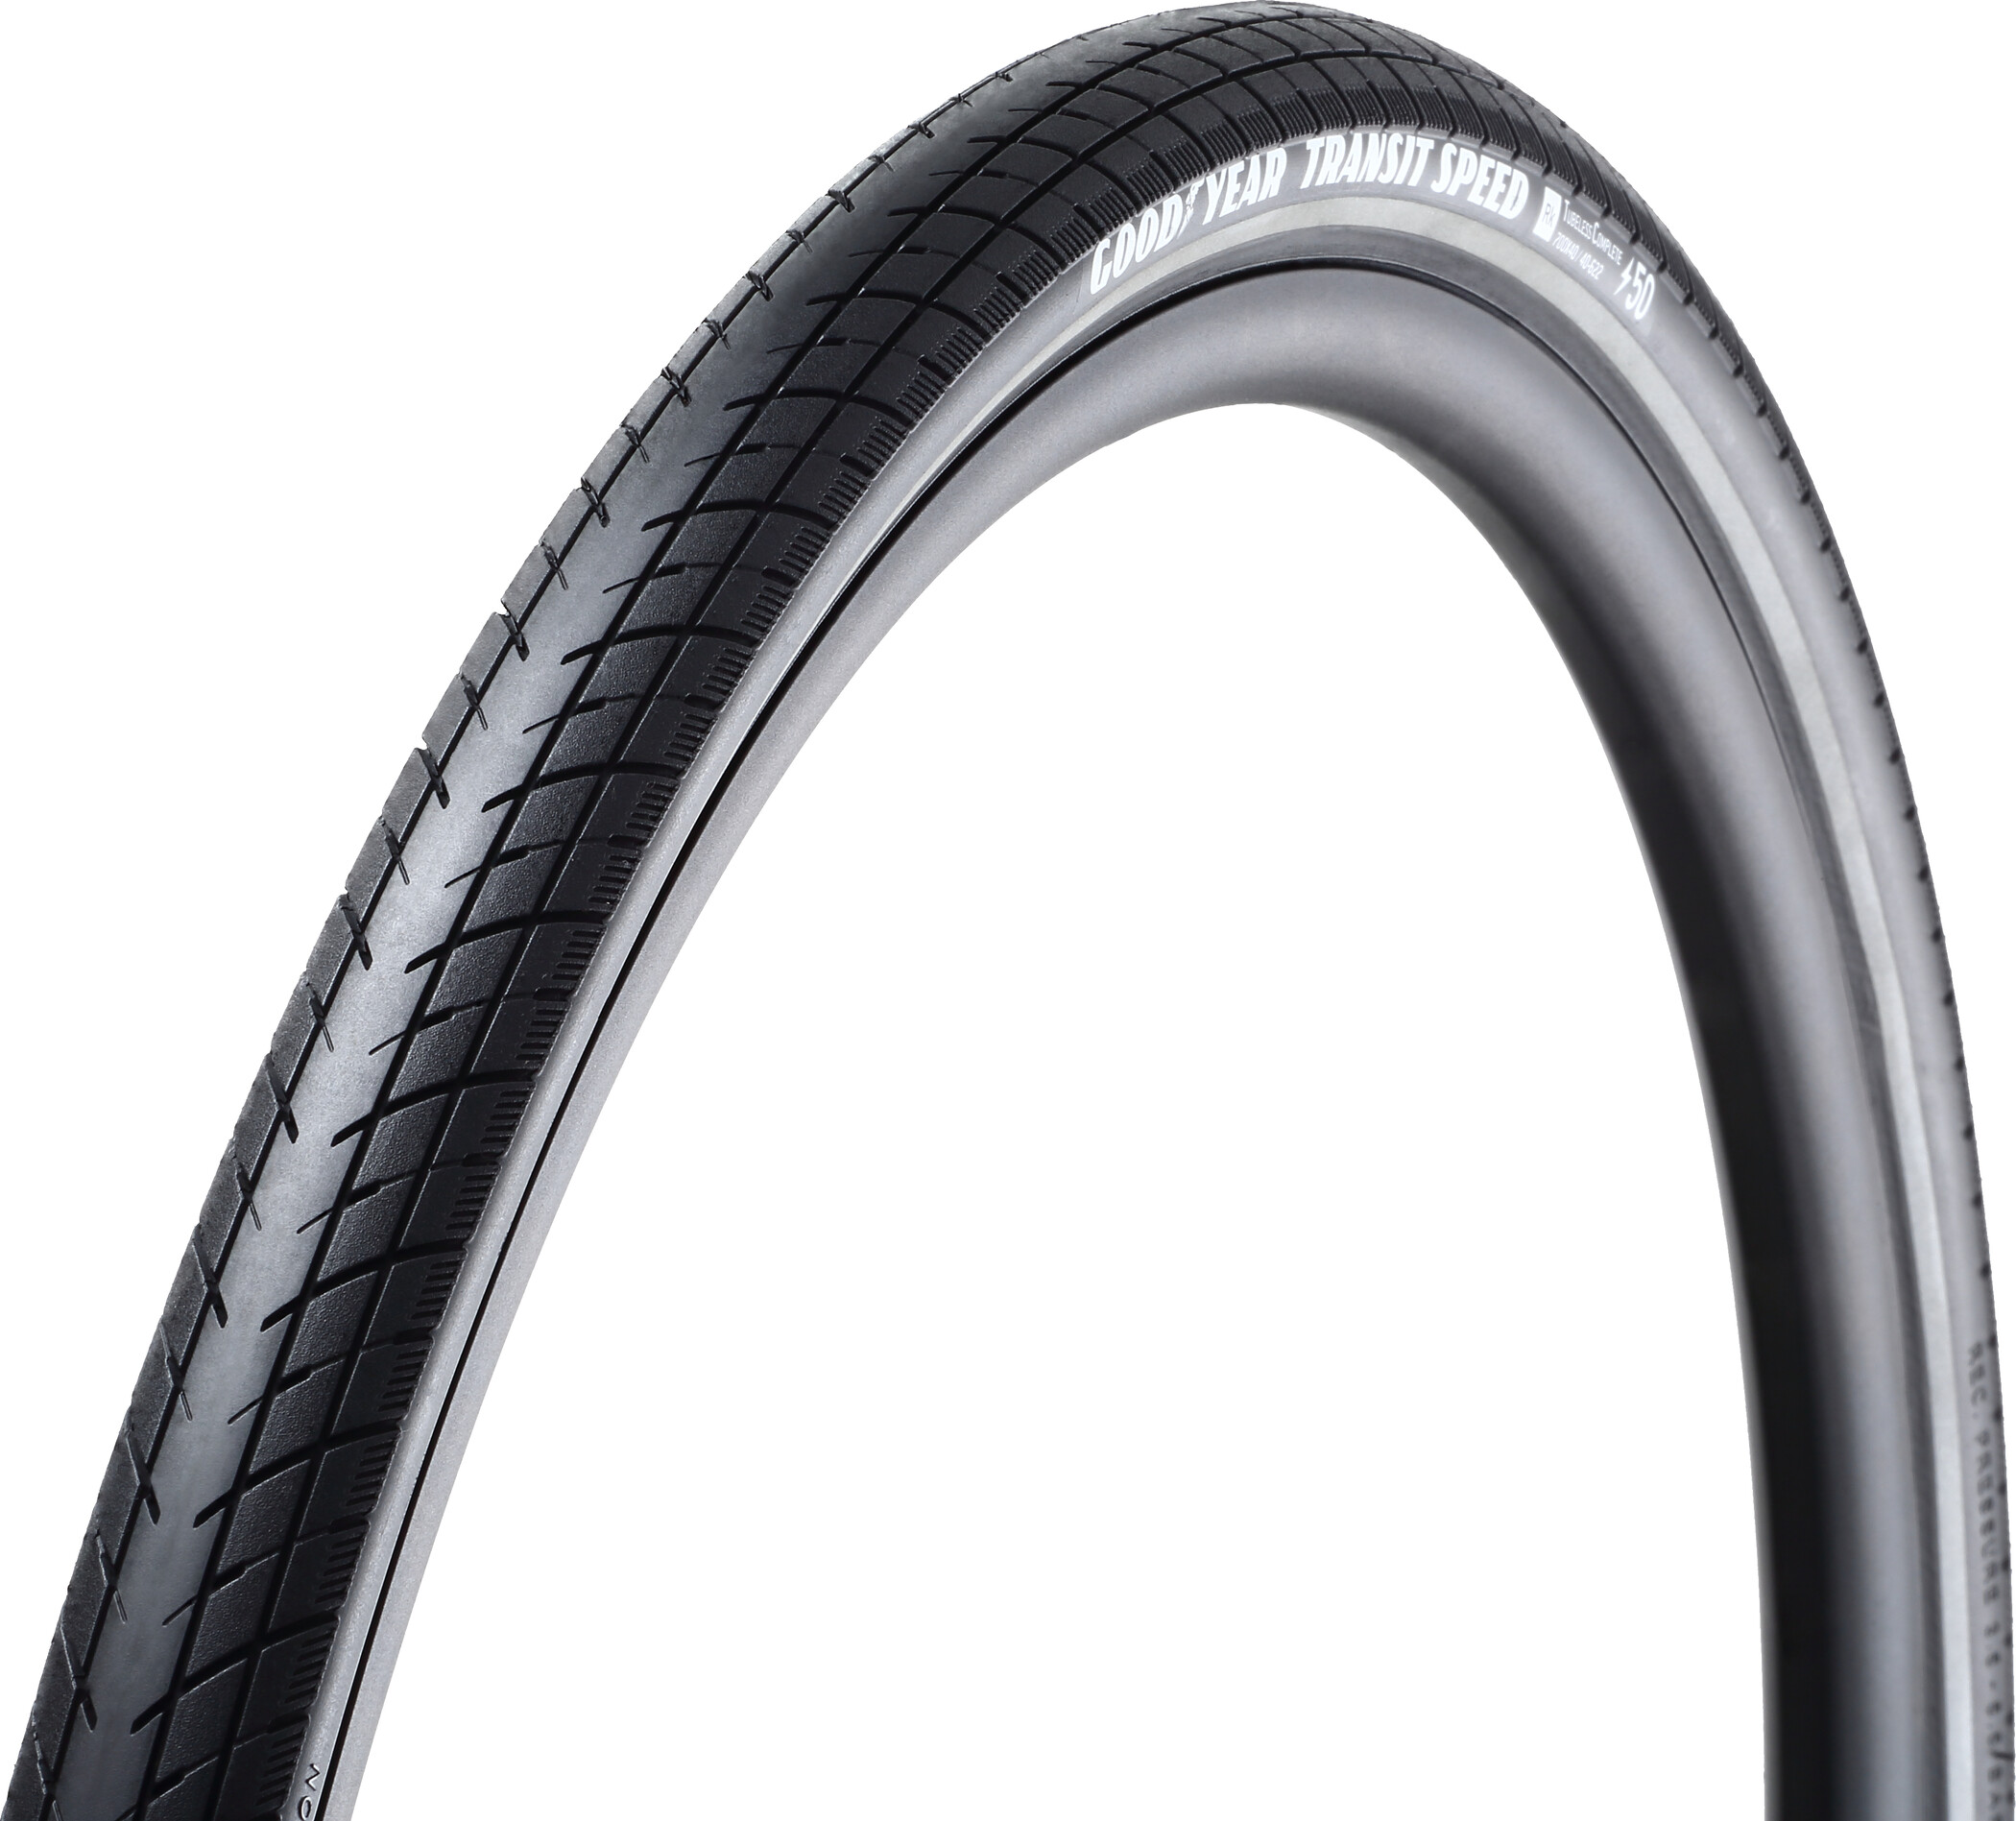 Goodyear Transit Speed Dæk 35-622 Secure e50, black reflected (2019)   Tyres